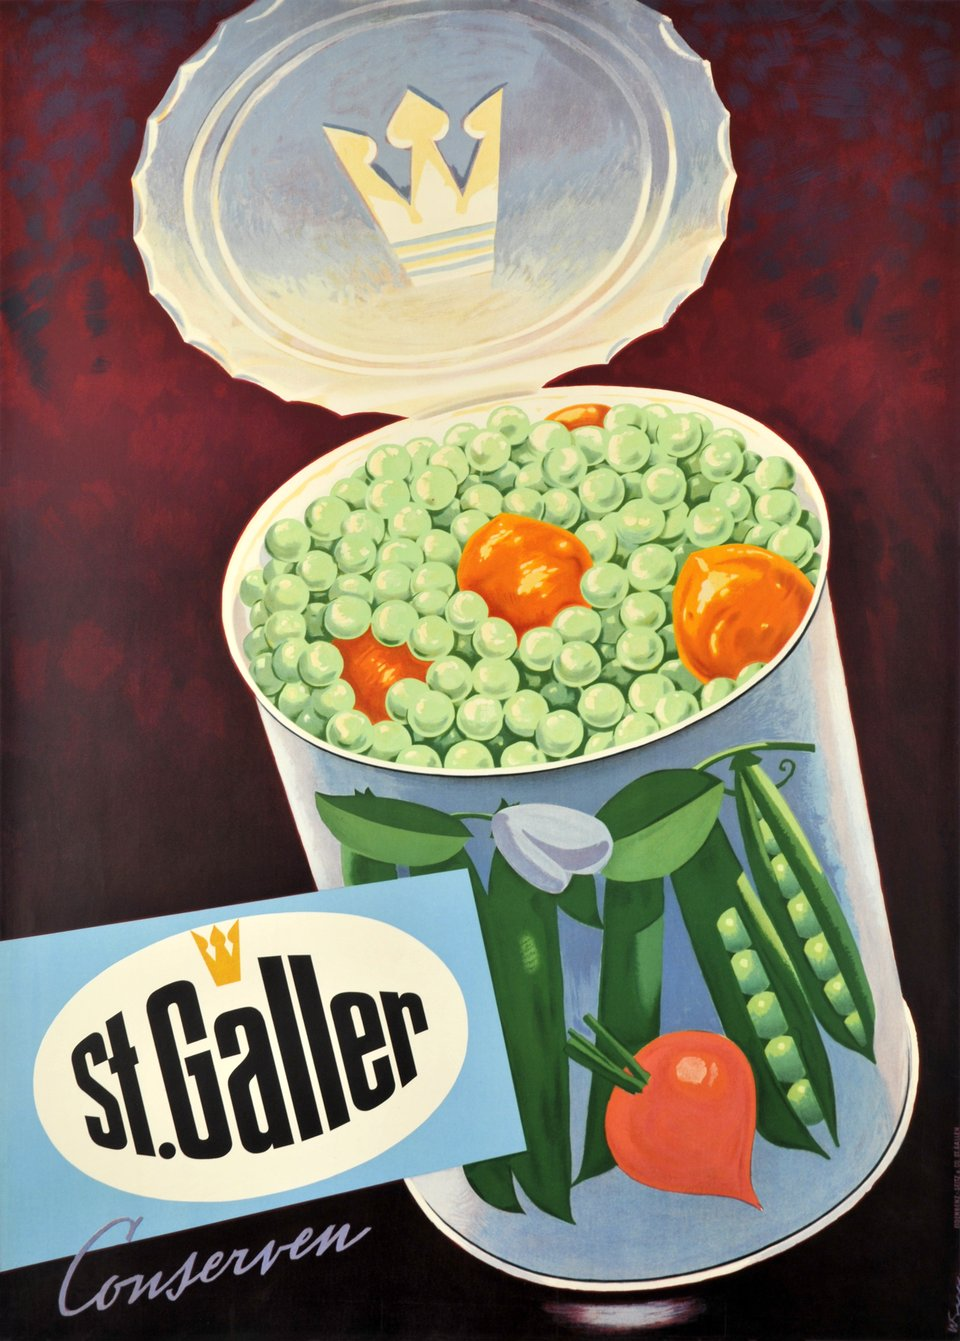 St-Galler conserven – Vintage poster –  WEISS – 1950